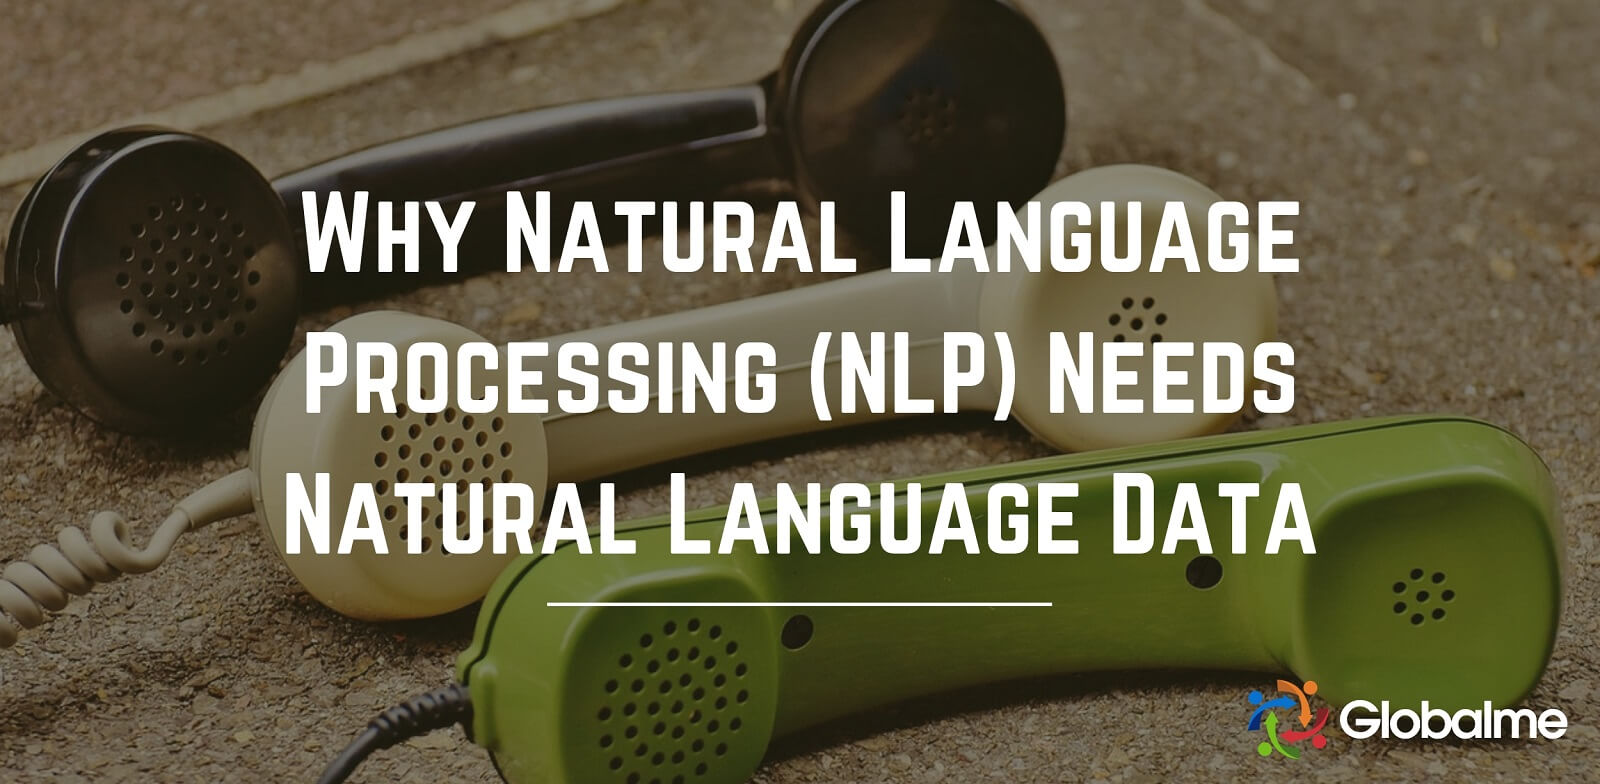 why natural language procession needs natural language data